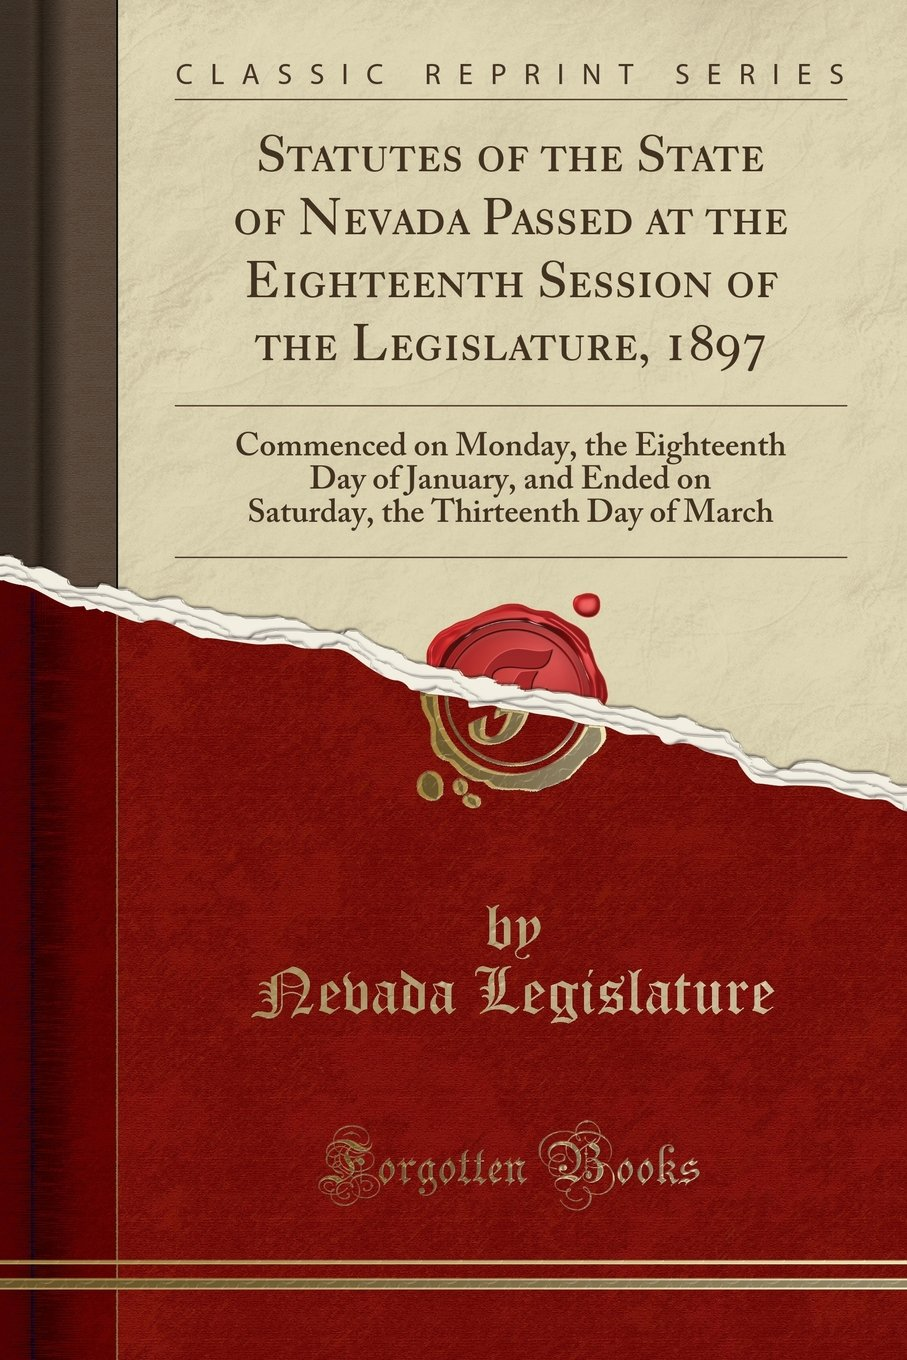 Download Statutes of the State of Nevada Passed at the Eighteenth Session of the Legislature, 1897: Commenced on Monday, the Eighteenth Day of January, and ... the Thirteenth Day of March (Classic Reprint) pdf epub